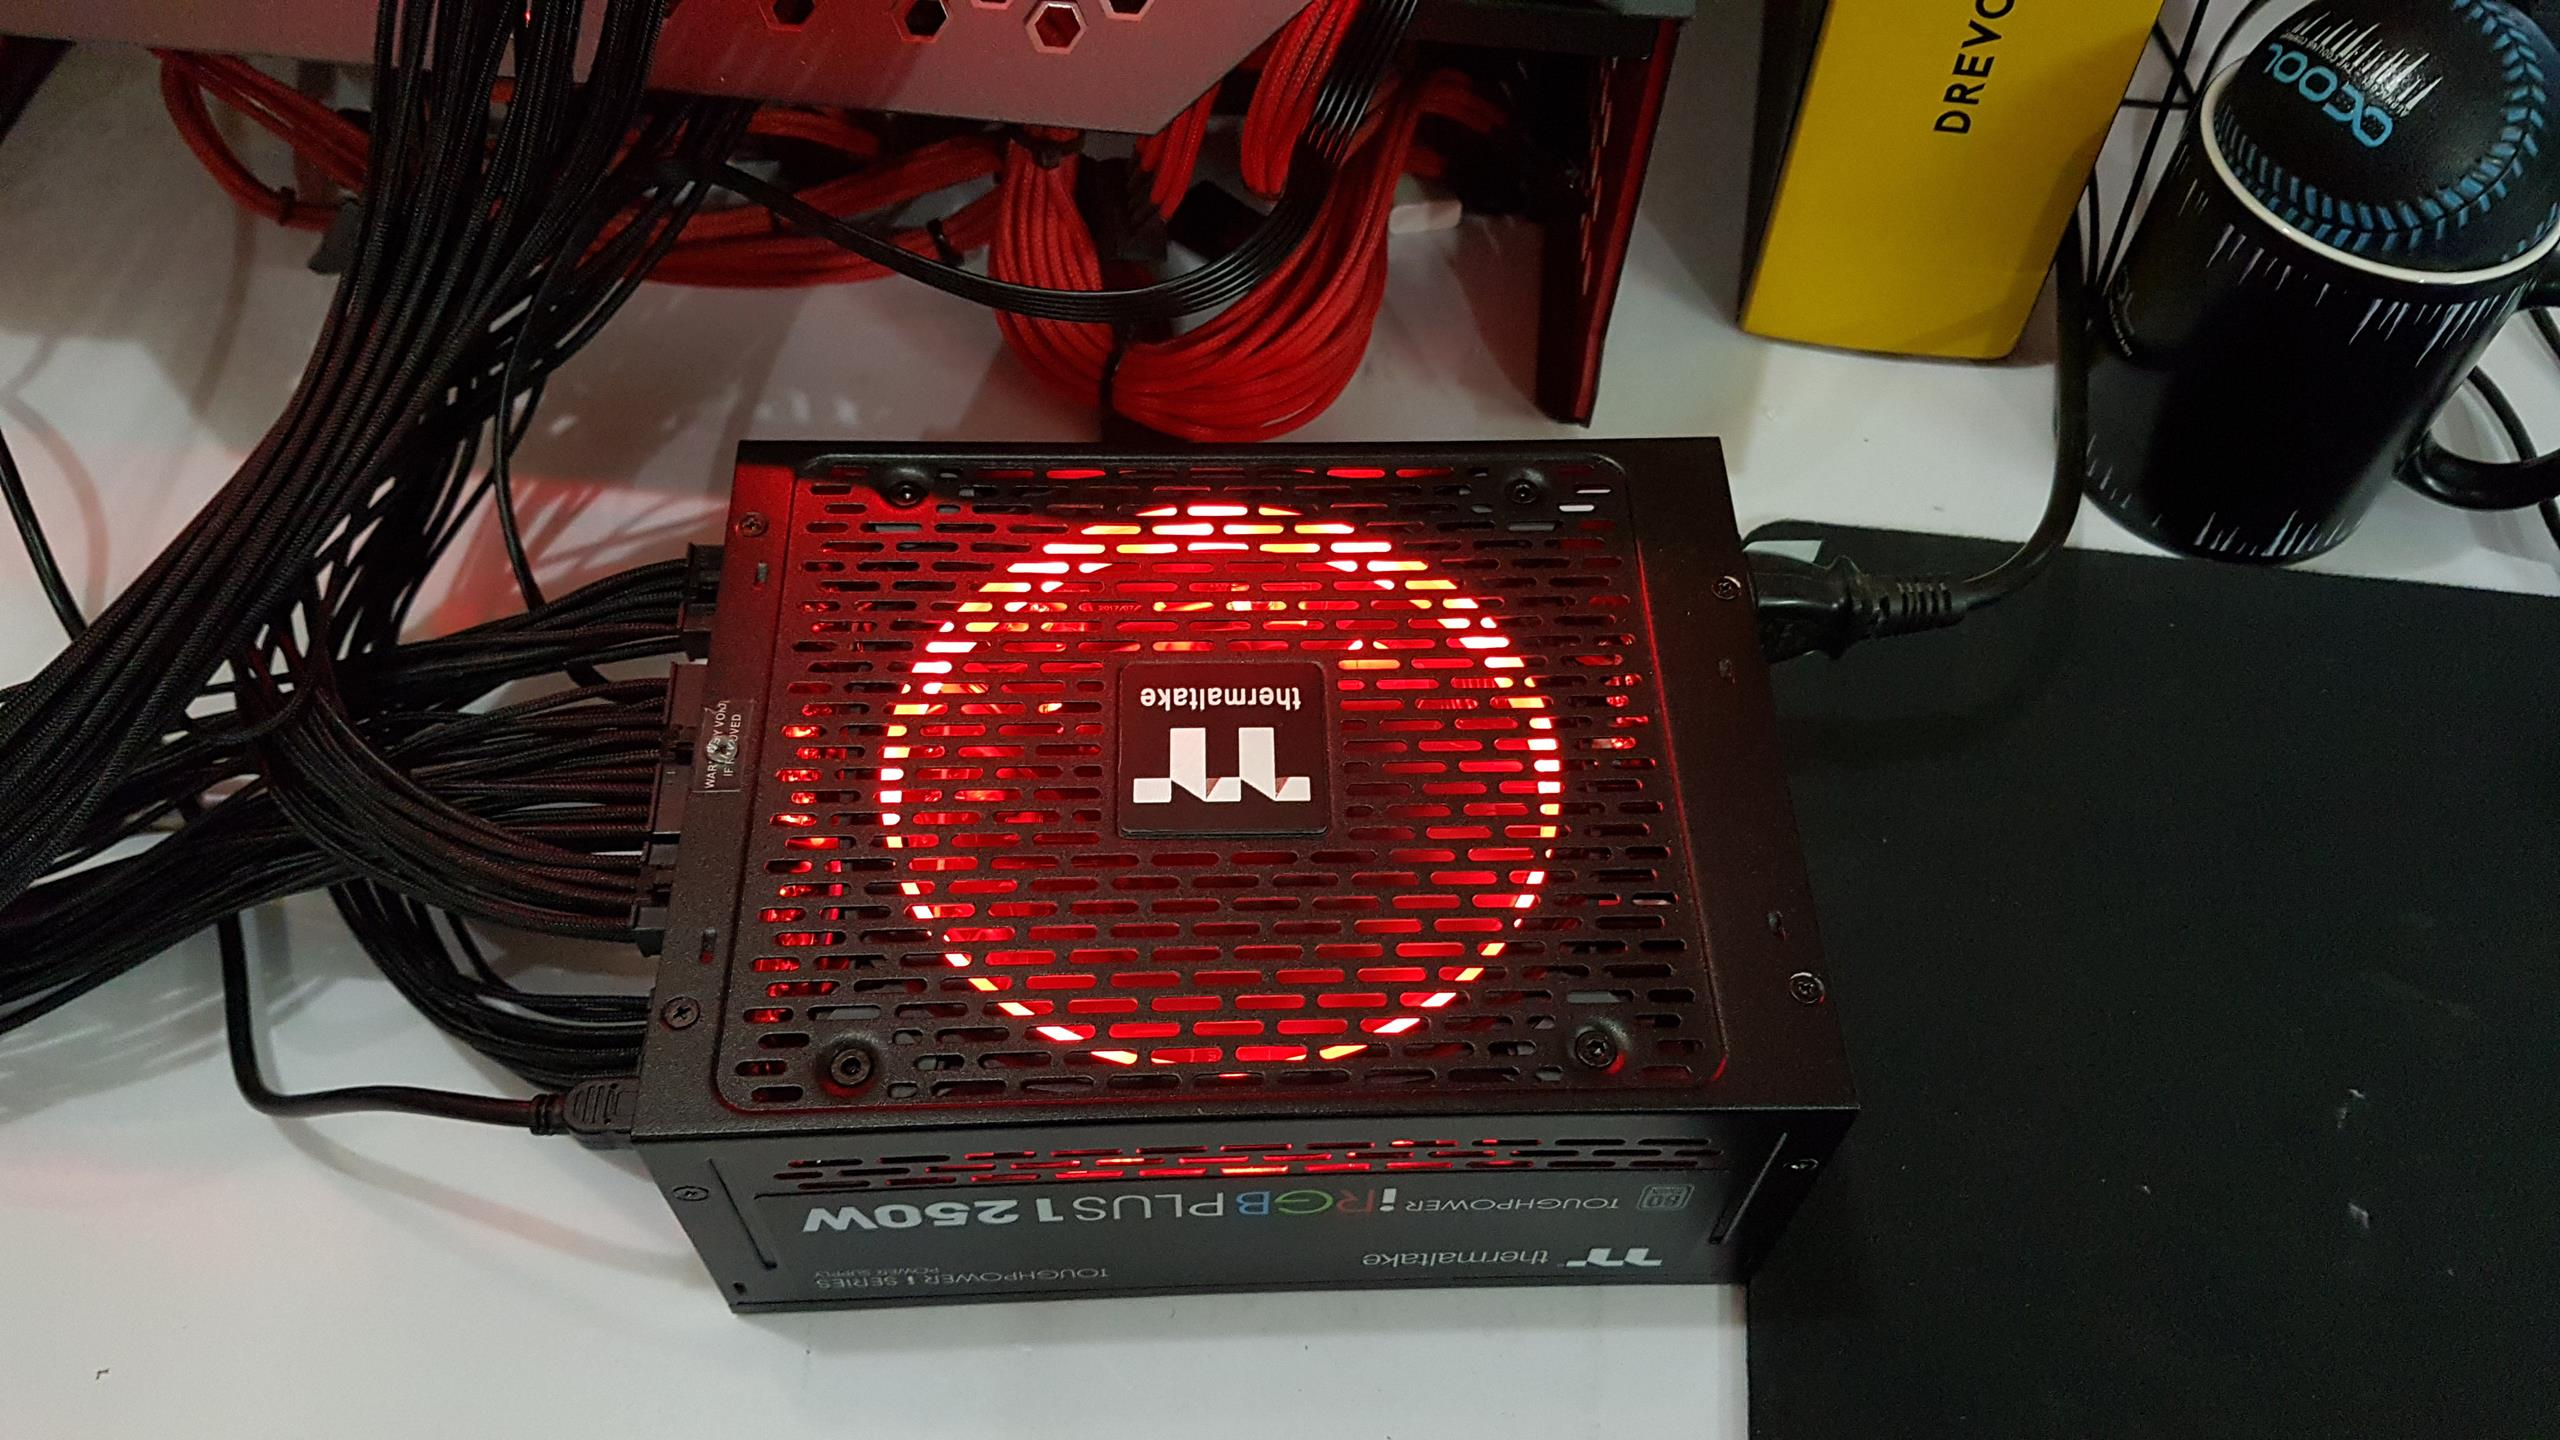 Thermaltake has designed the chassis of the unit in such a way that user gets to experience the RGB LED lighting not only from the top cover as it is ...